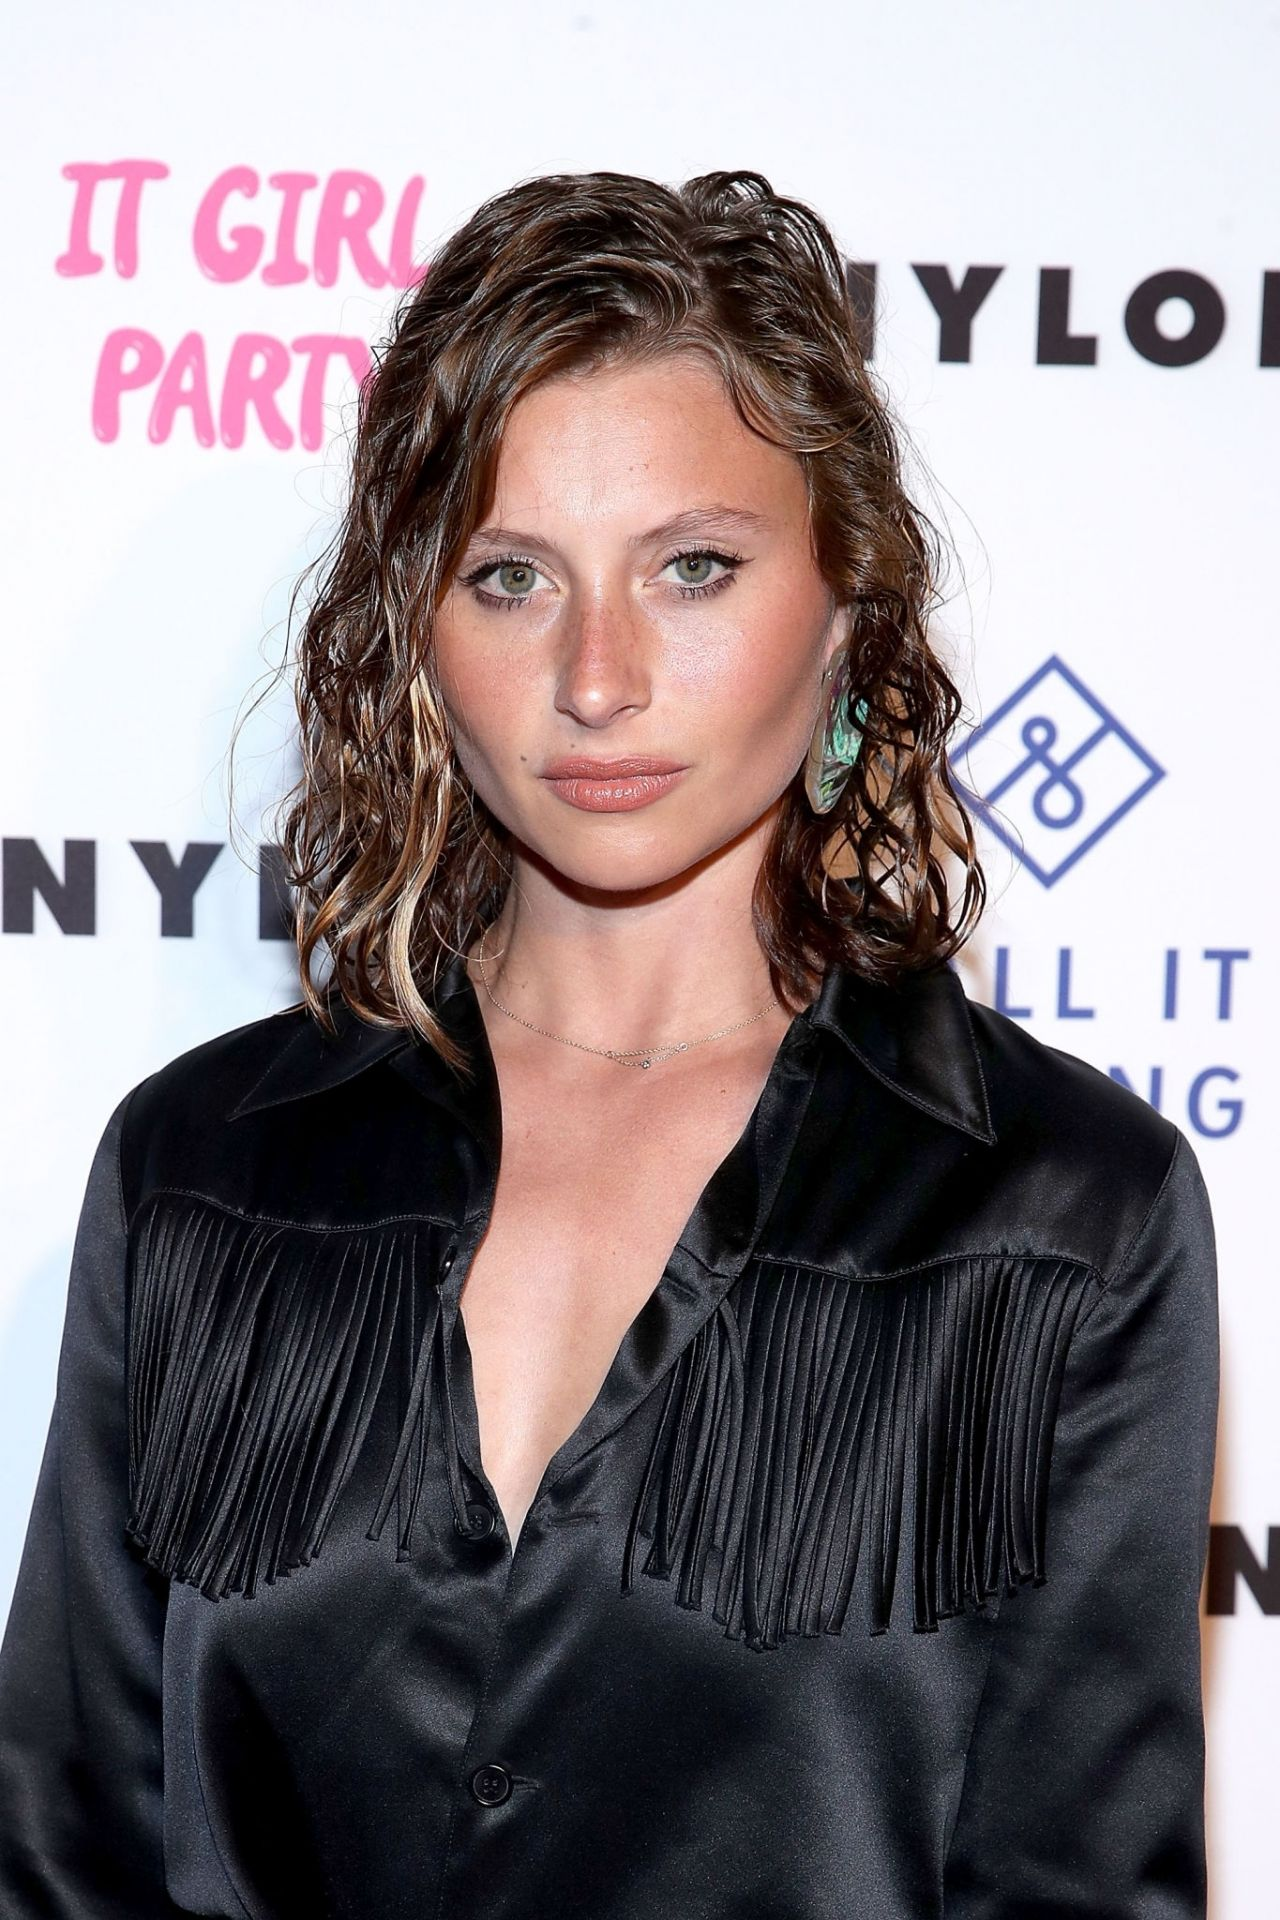 Alyson aly michalka nylons annual it girl party in la 10 11 2018